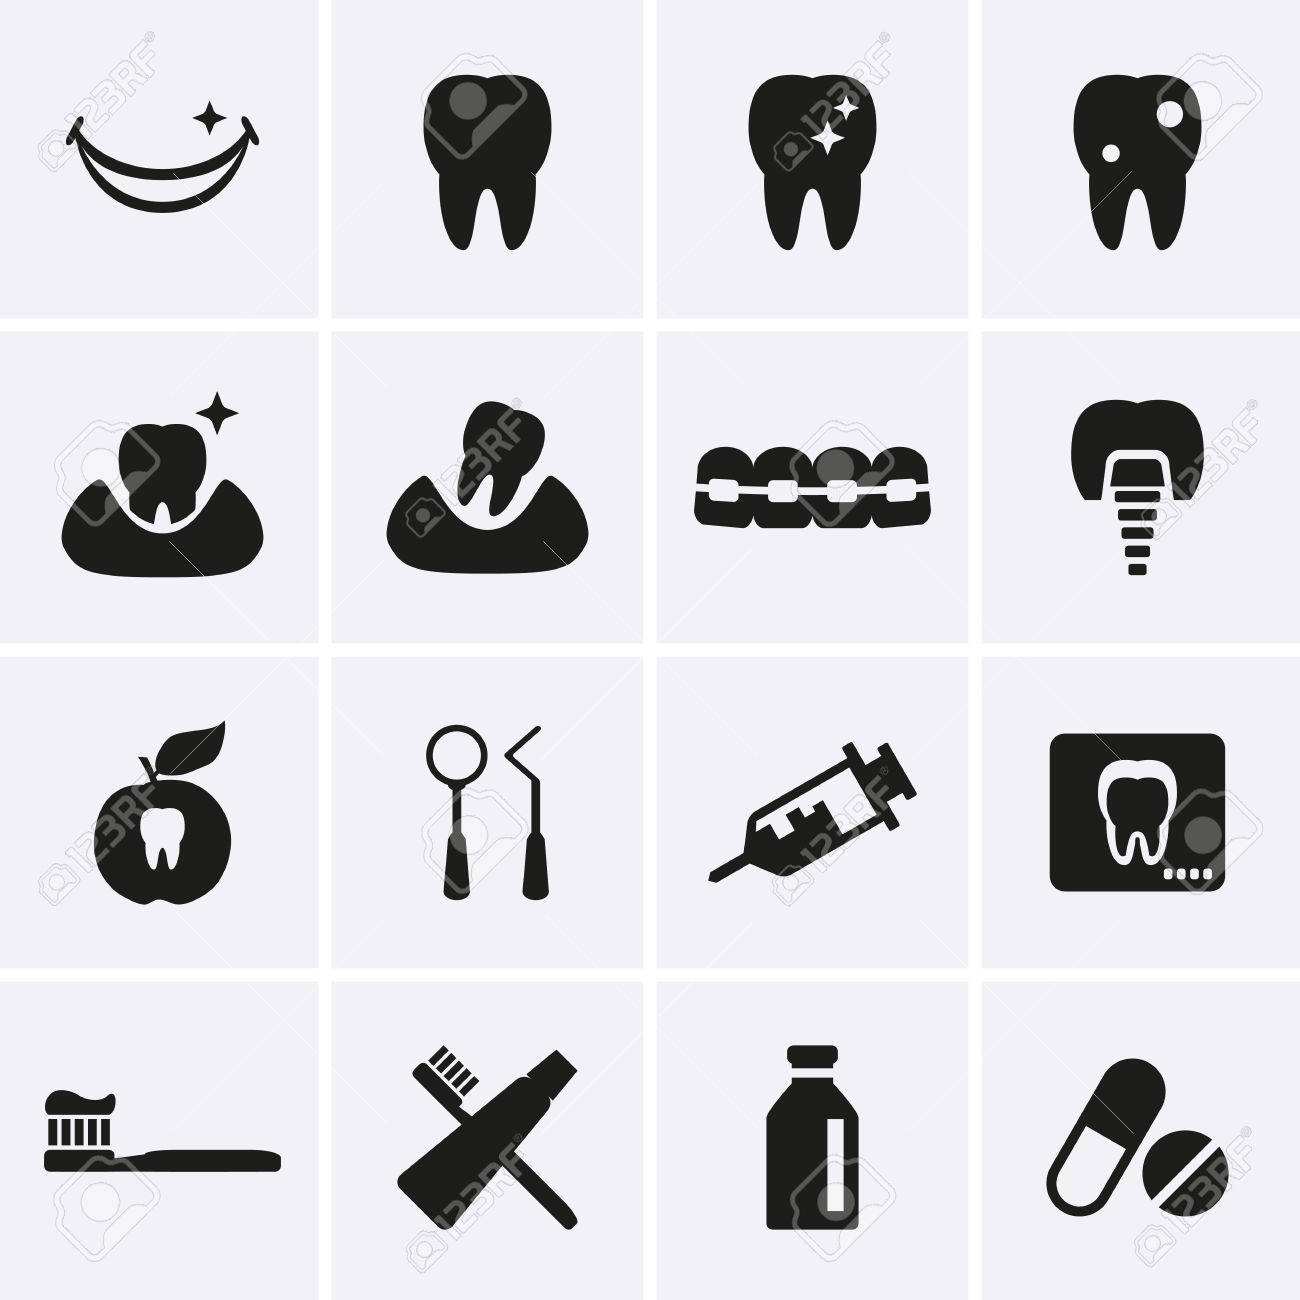 Dental Icons Vector Royalty Free Cliparts, Vectors, And Stock ...